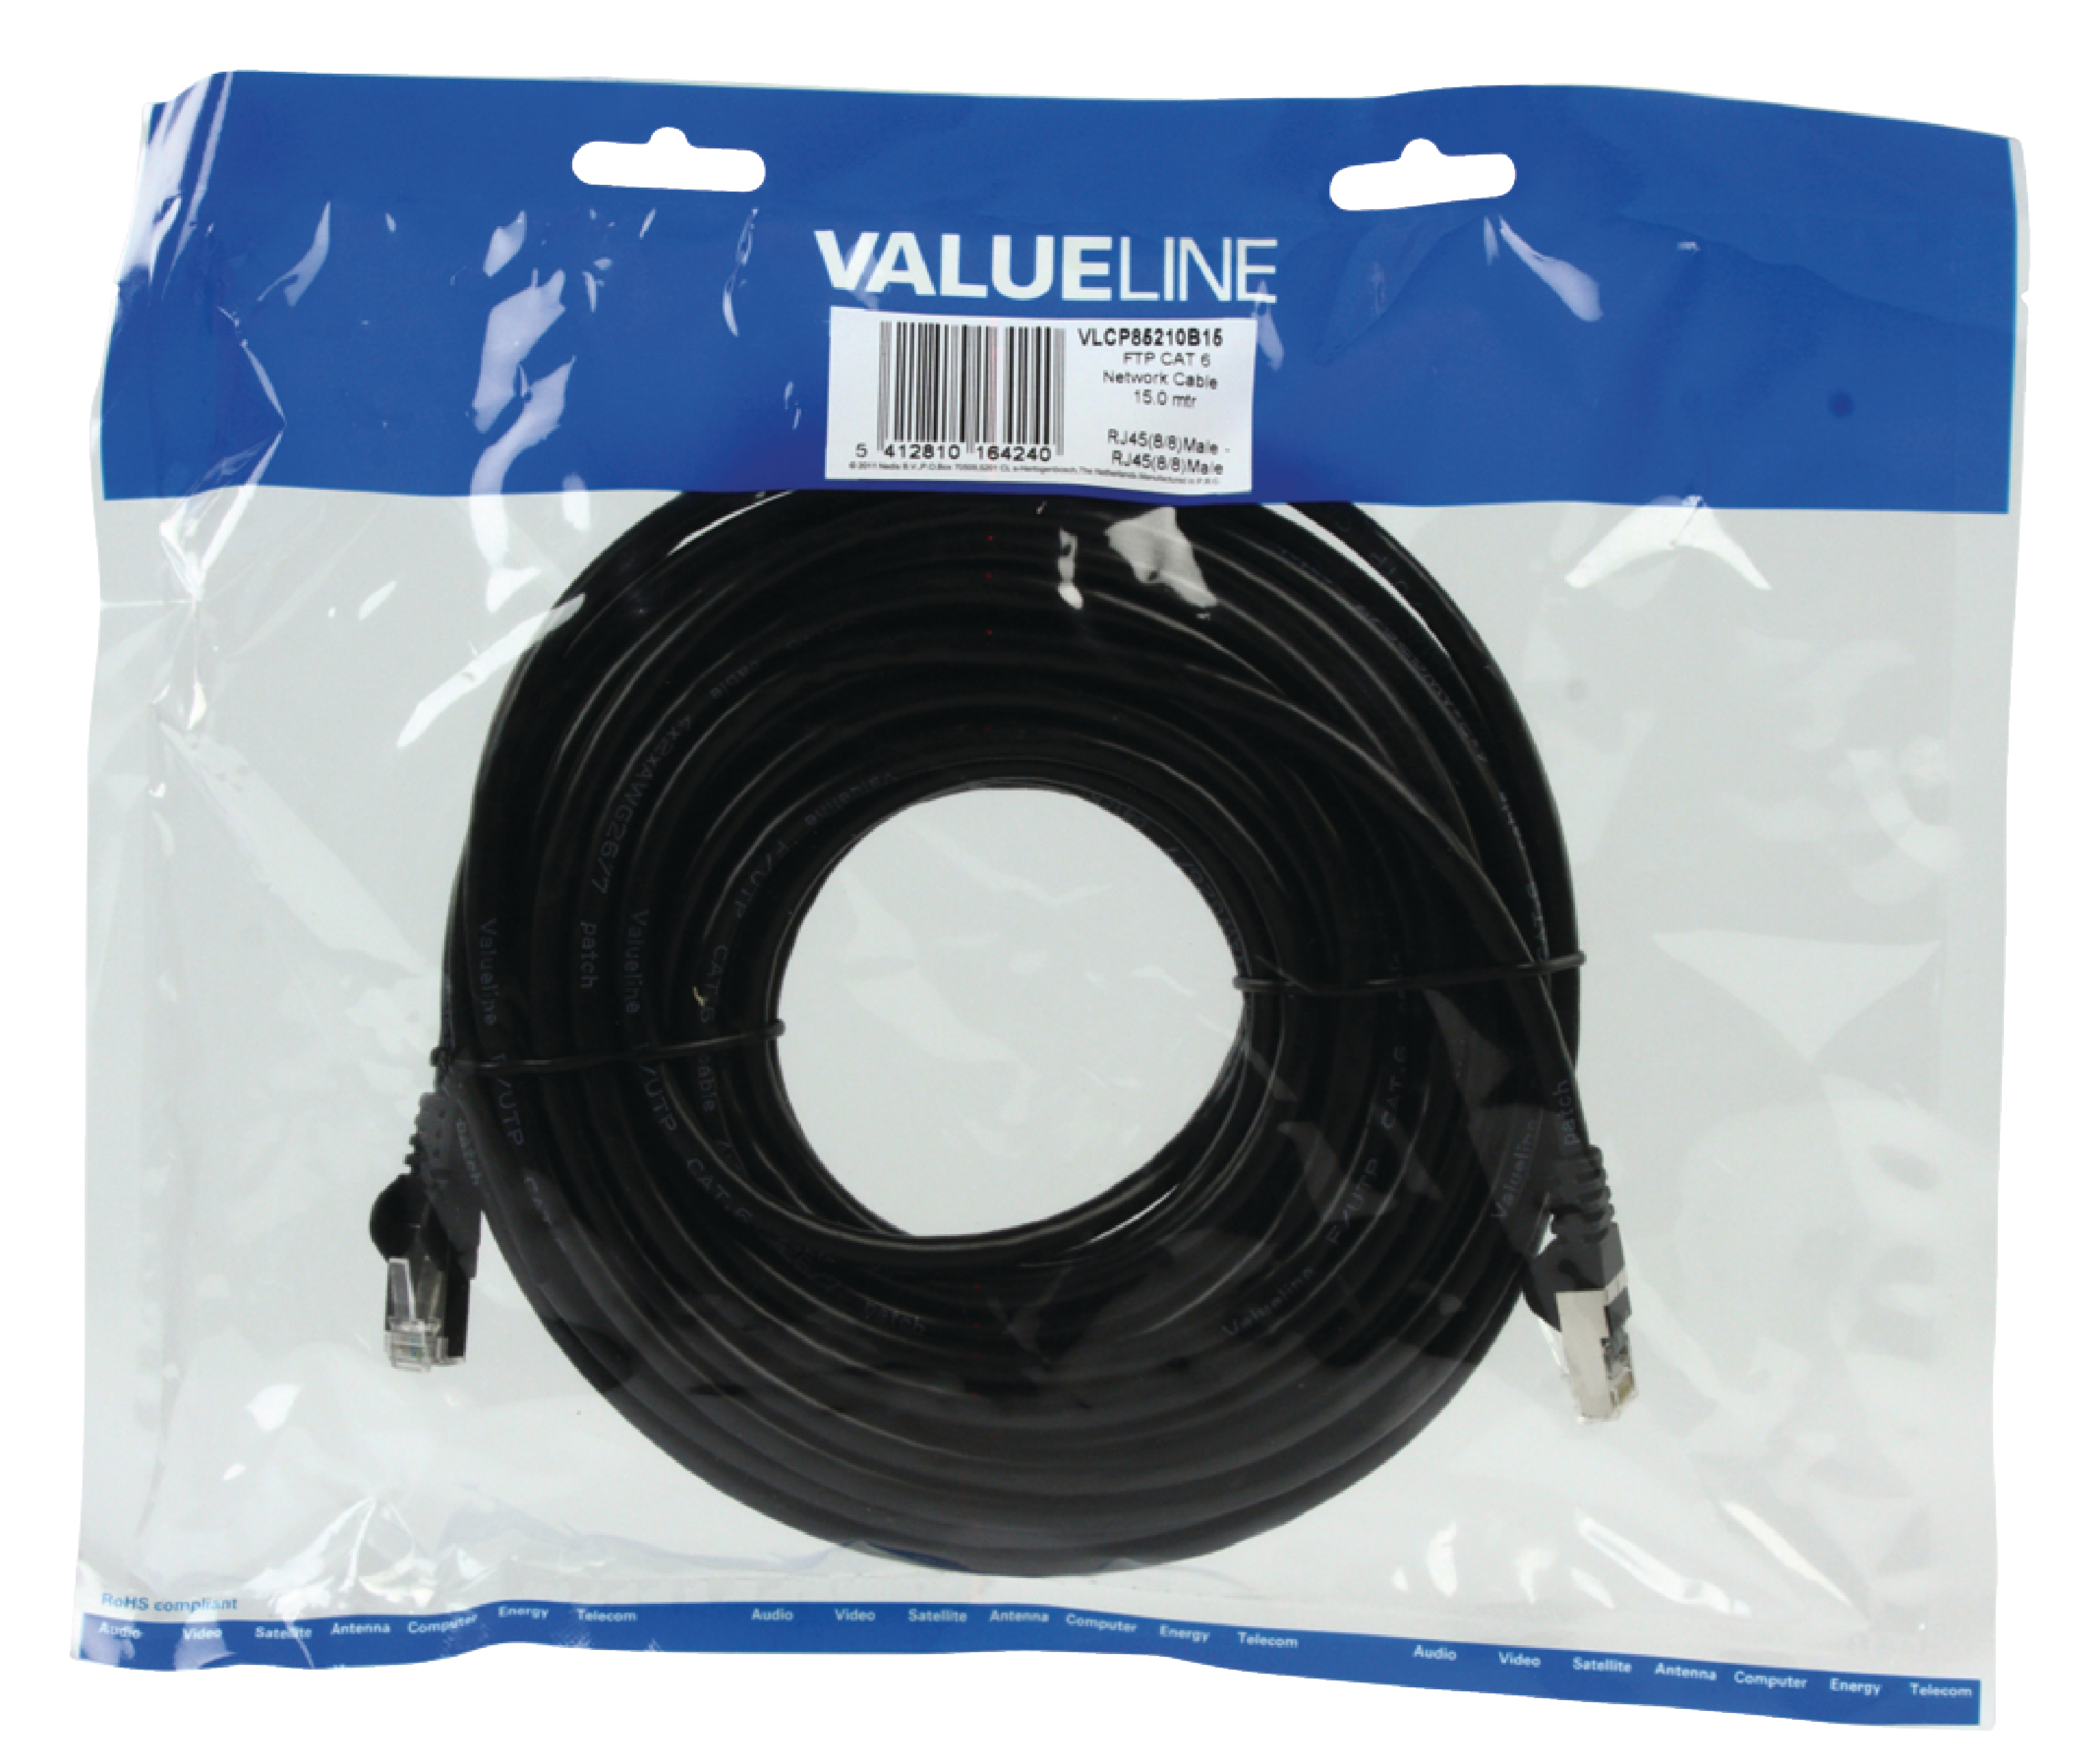 Valueline CAT6 F/UTP Netwerkkabel RJ45 (8/8) Male - RJ45 (8/8) Male 30.0 m Zwart